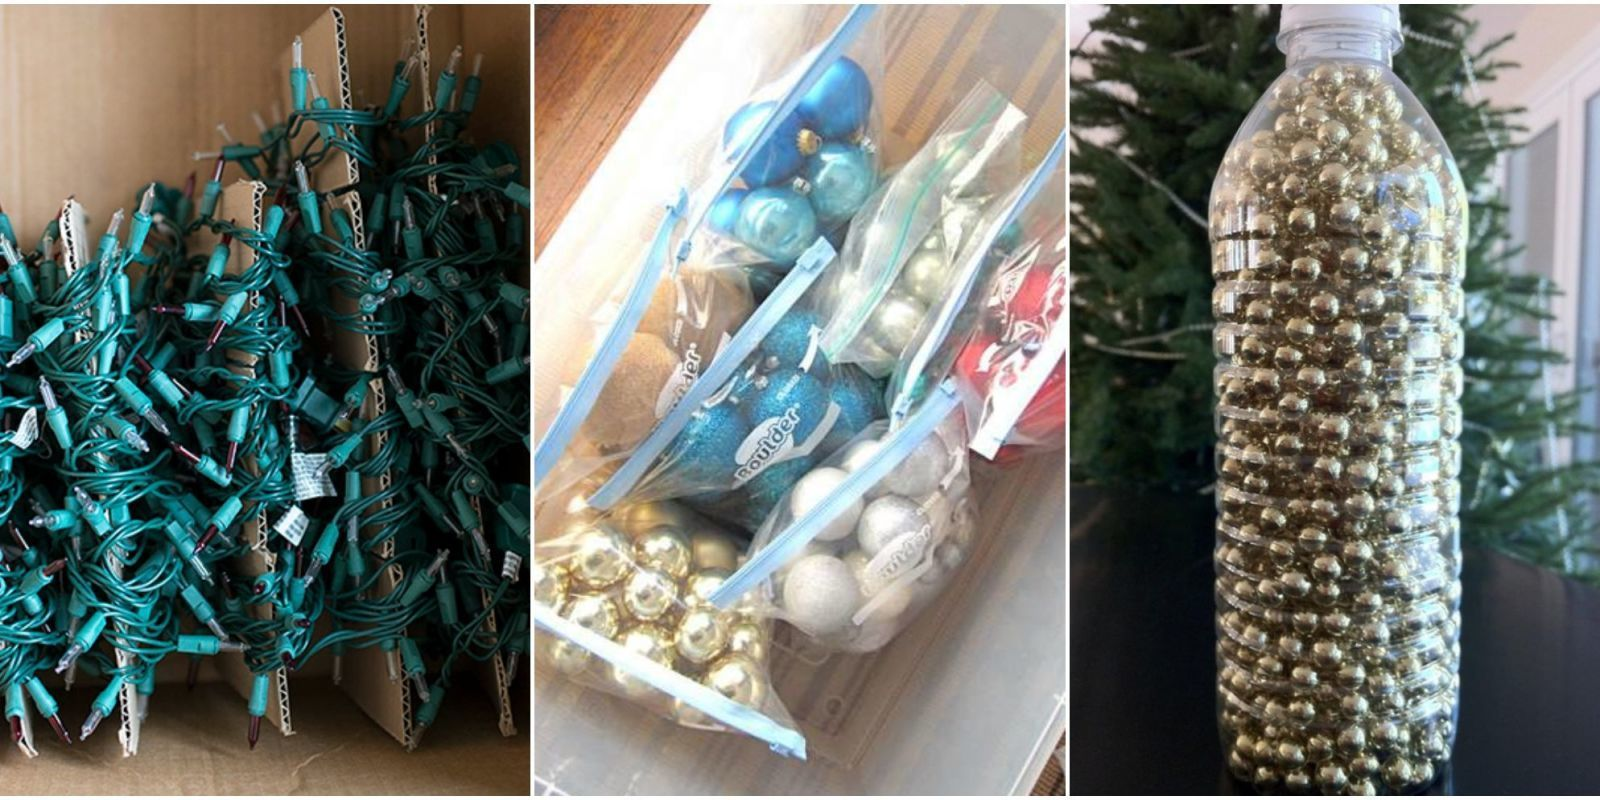 20 Super-Smart Ways to Store All of Your Christmas Decorations